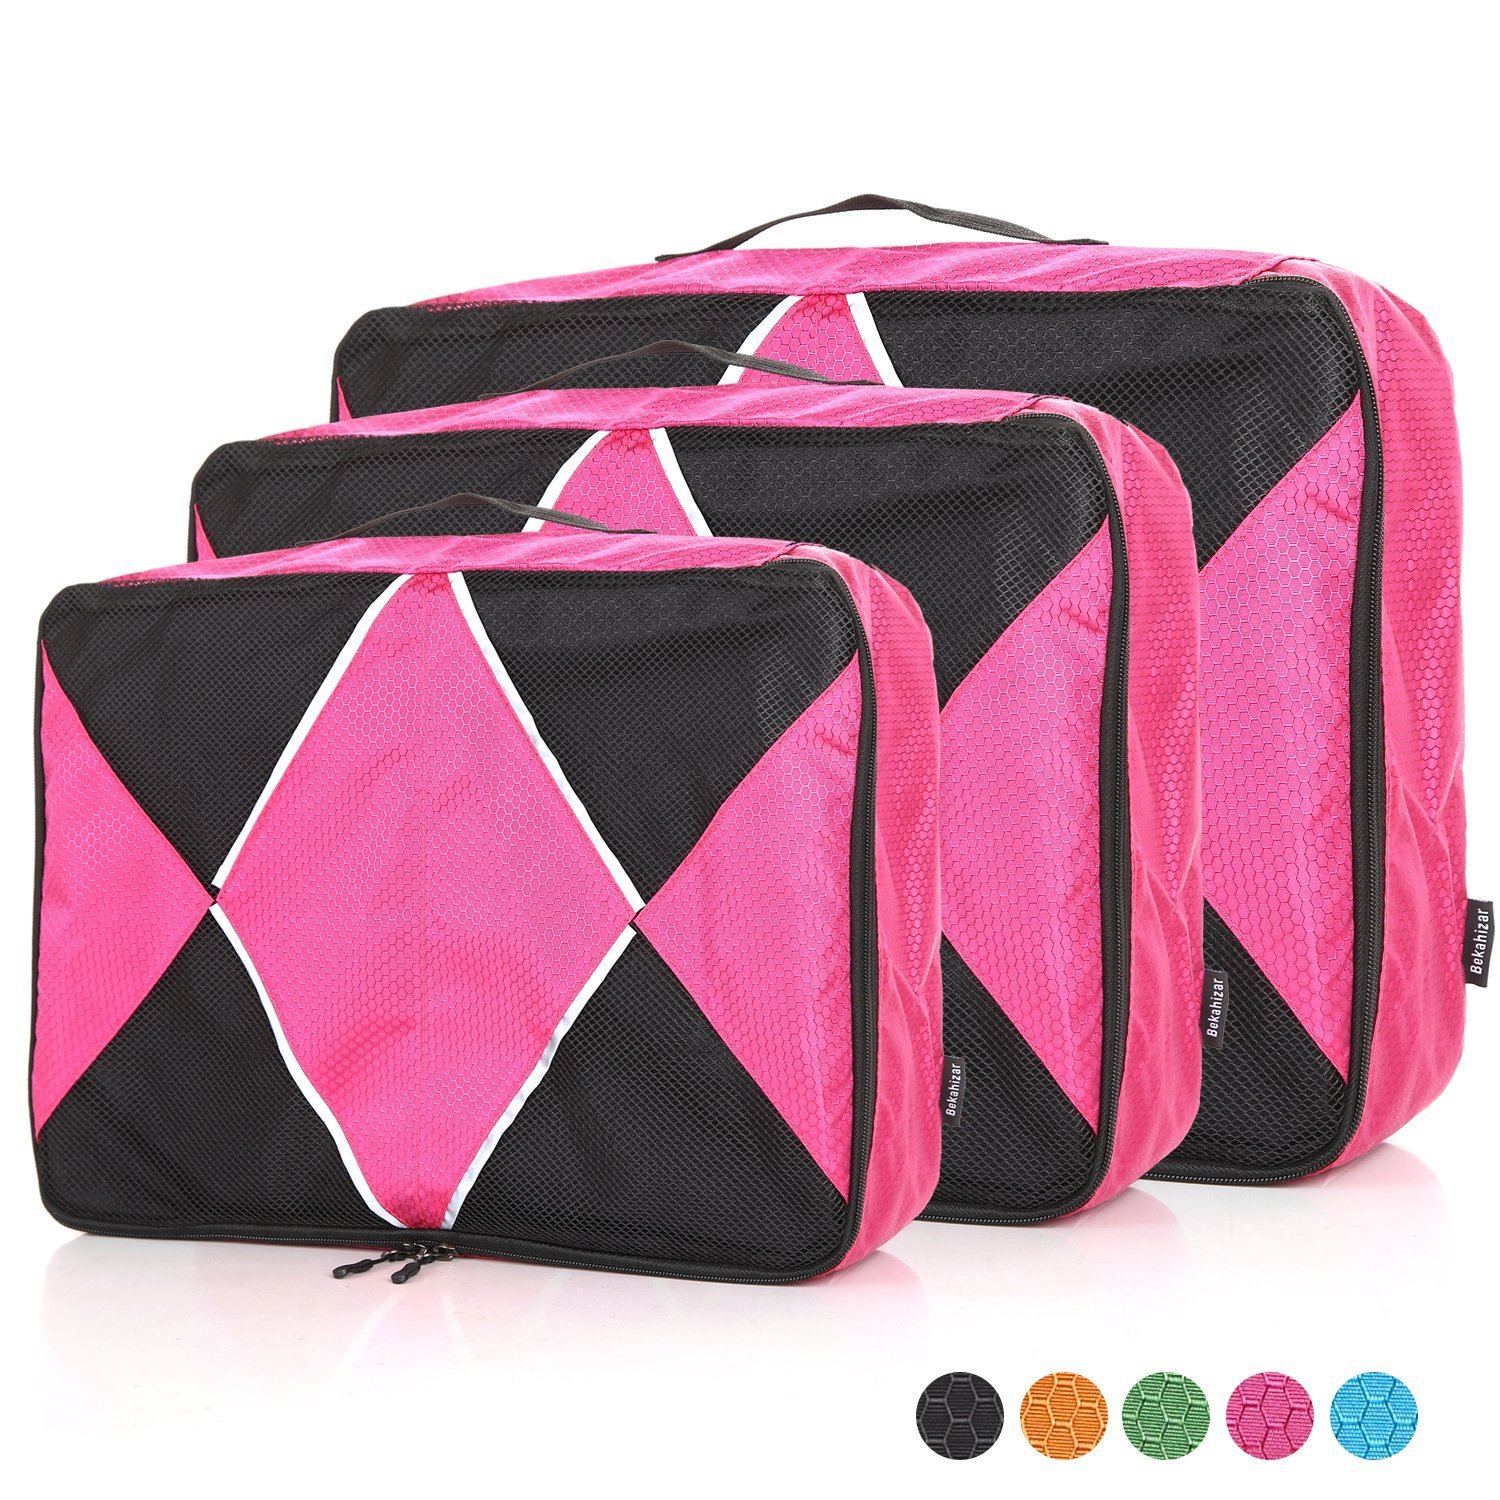 Bekahizar Packing Cubes 3 Set Travel Luggage Packing Organizers in 5 Colors (Fushcia)